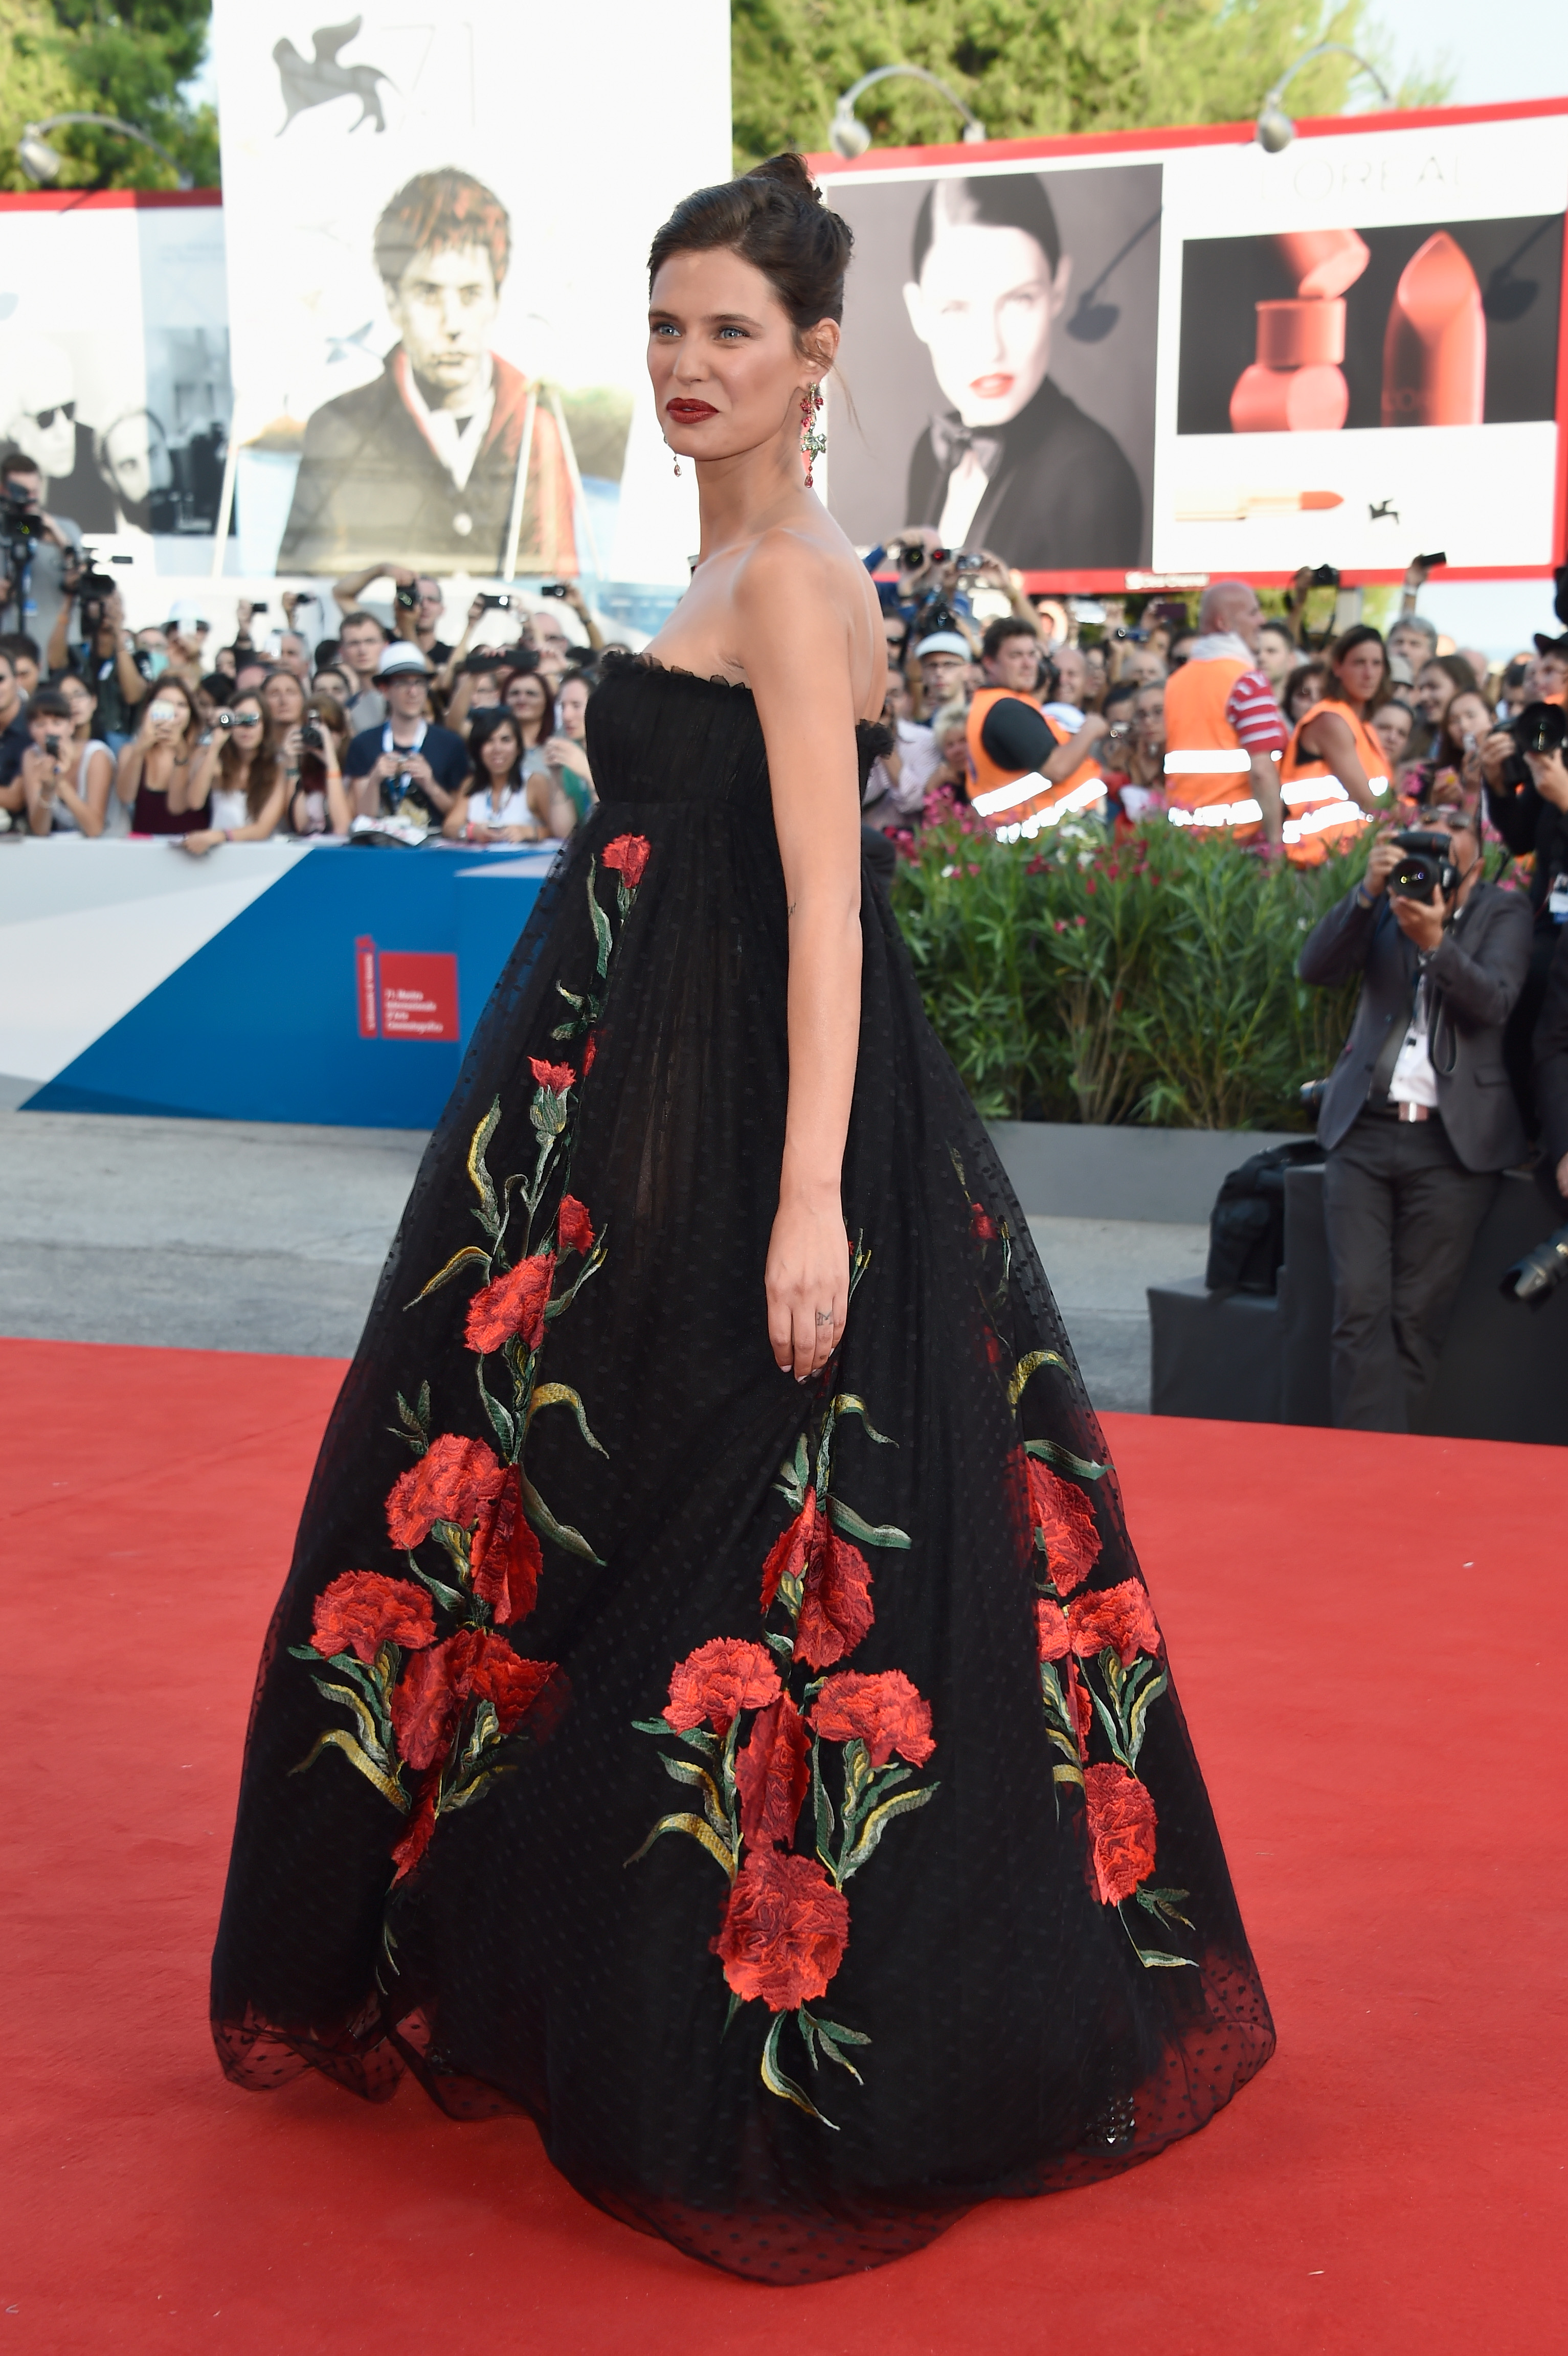 VENICE, ITALY - AUGUST 27:  Bianca Balti attends the Opening Ceremony and 'Birdman' premiere during the 71st Venice Film Festival on August 27, 2014 in Venice, Italy.  (Photo by Pascal Le Segretain/Getty Images)